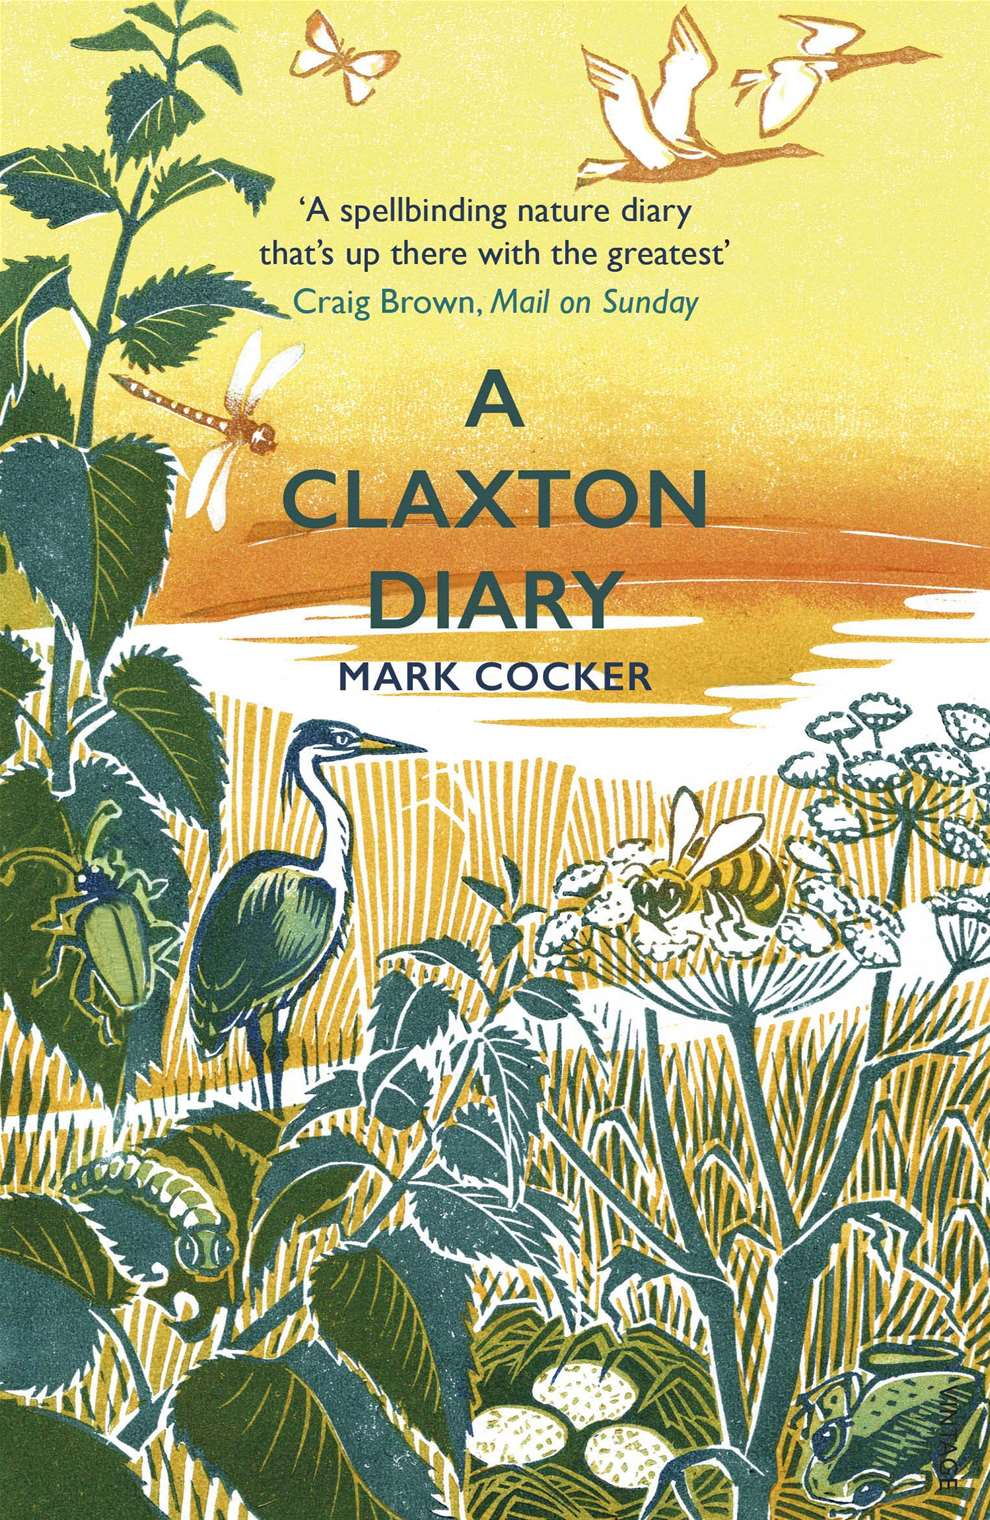 Clare Melinsky, Linocut book cover illustration wfor A Claxton's Diary by Mark Cocker - botanical cover with flowers and wildlife surrounding.